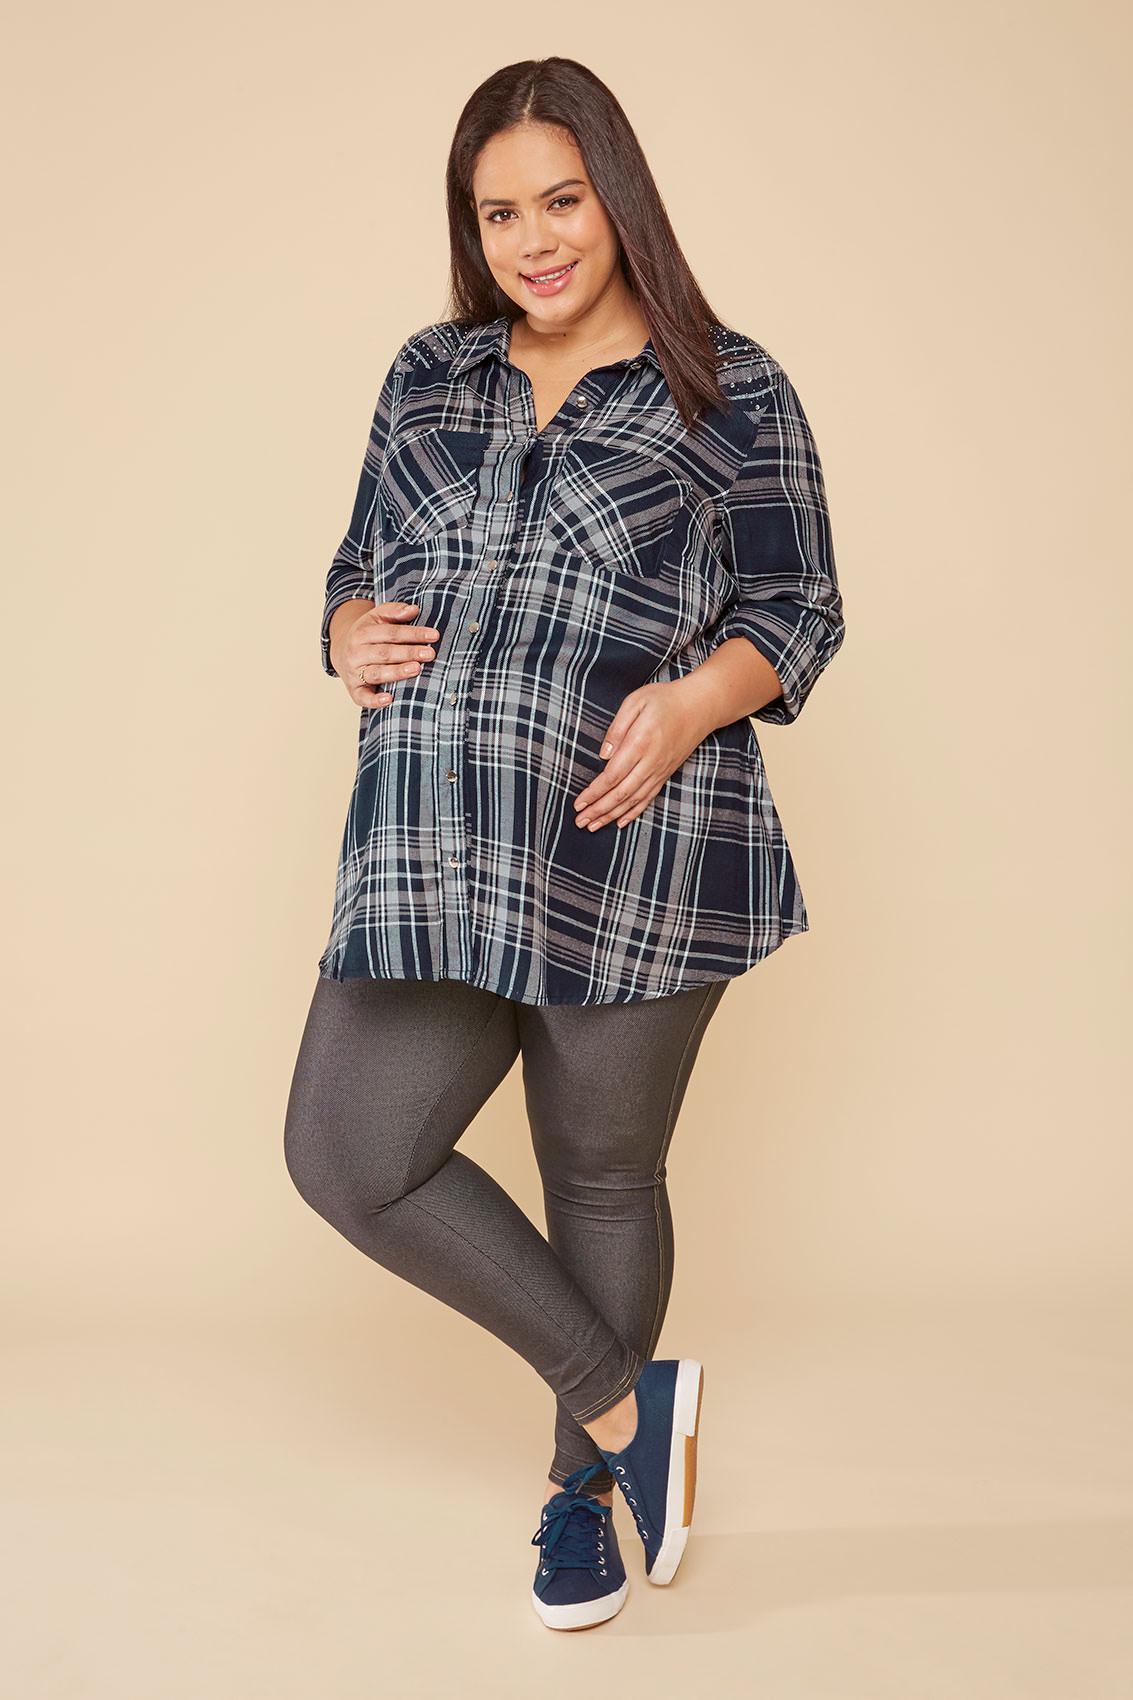 Rooms: BUMP IT UP MATERNITY Navy & Grey Checked Shirt With